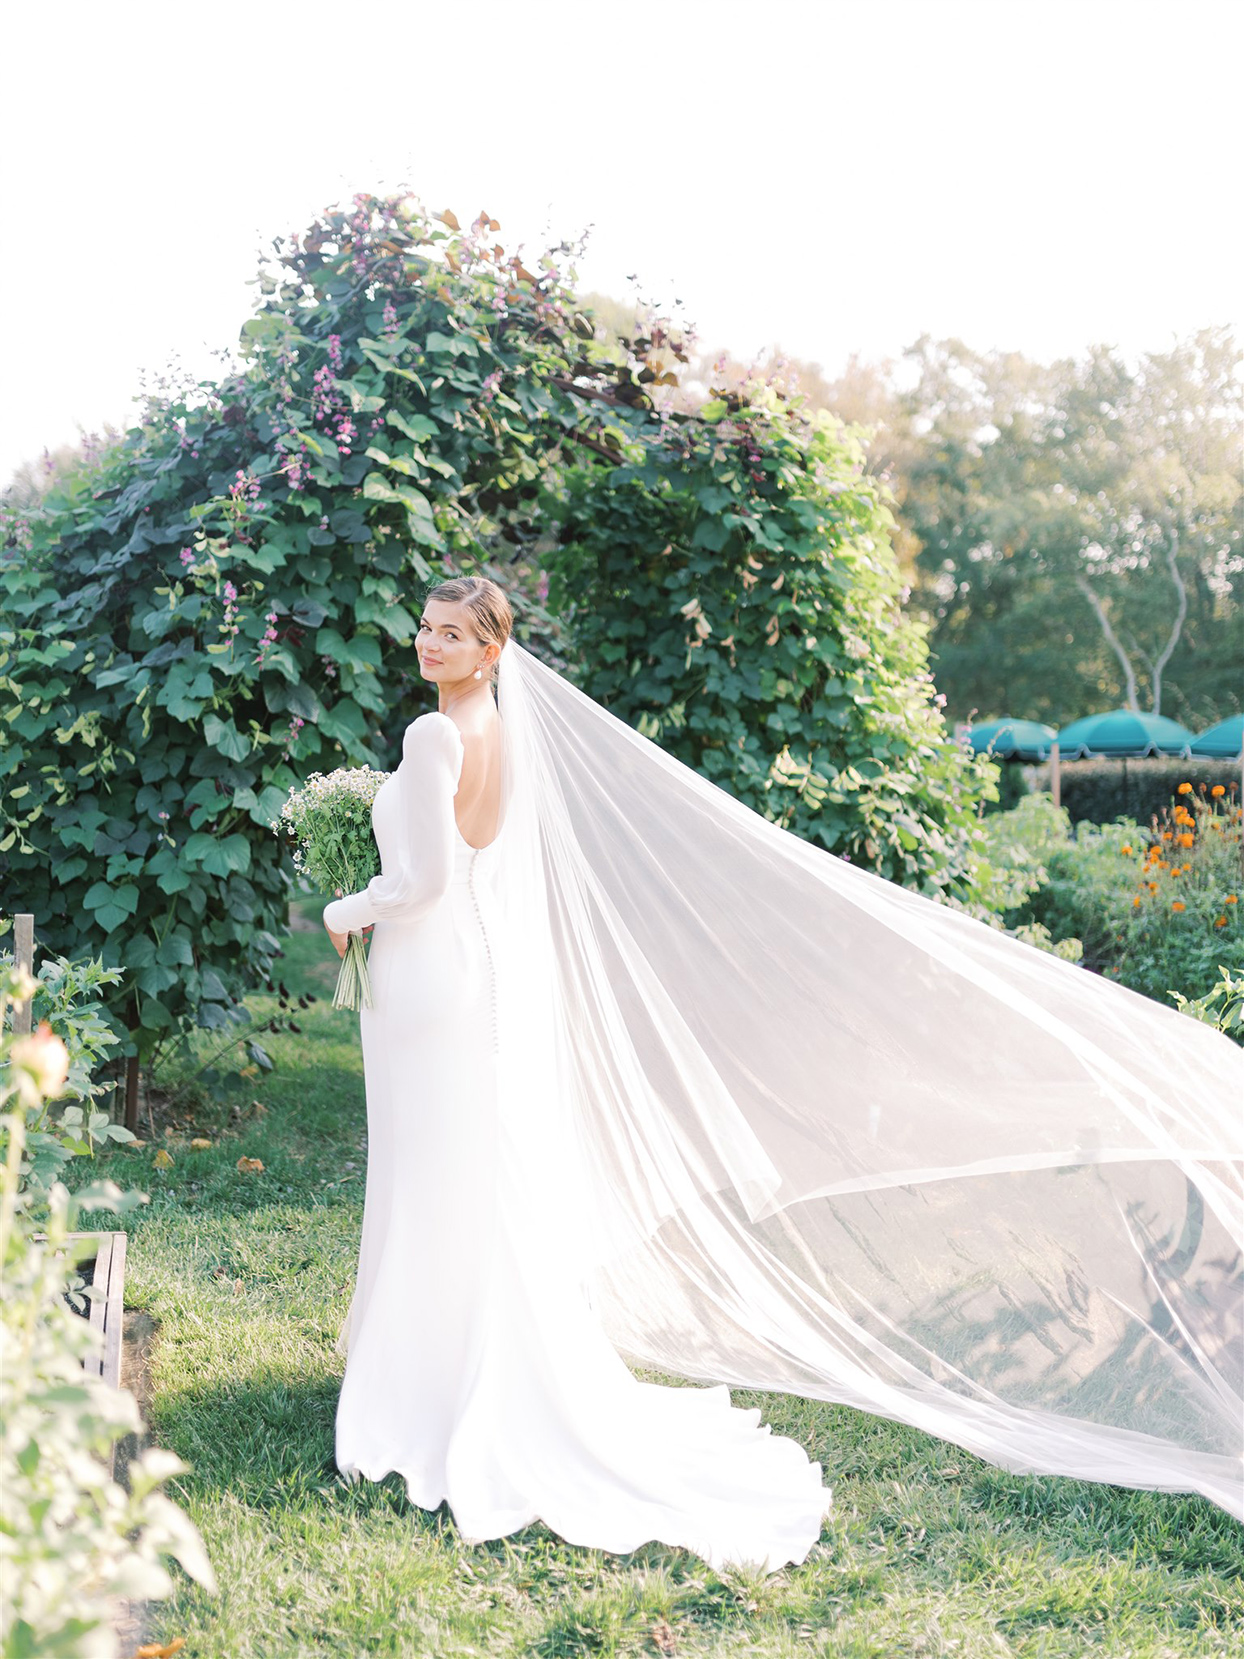 samantha cody wedding bride in white dress and veil flowing in the wind